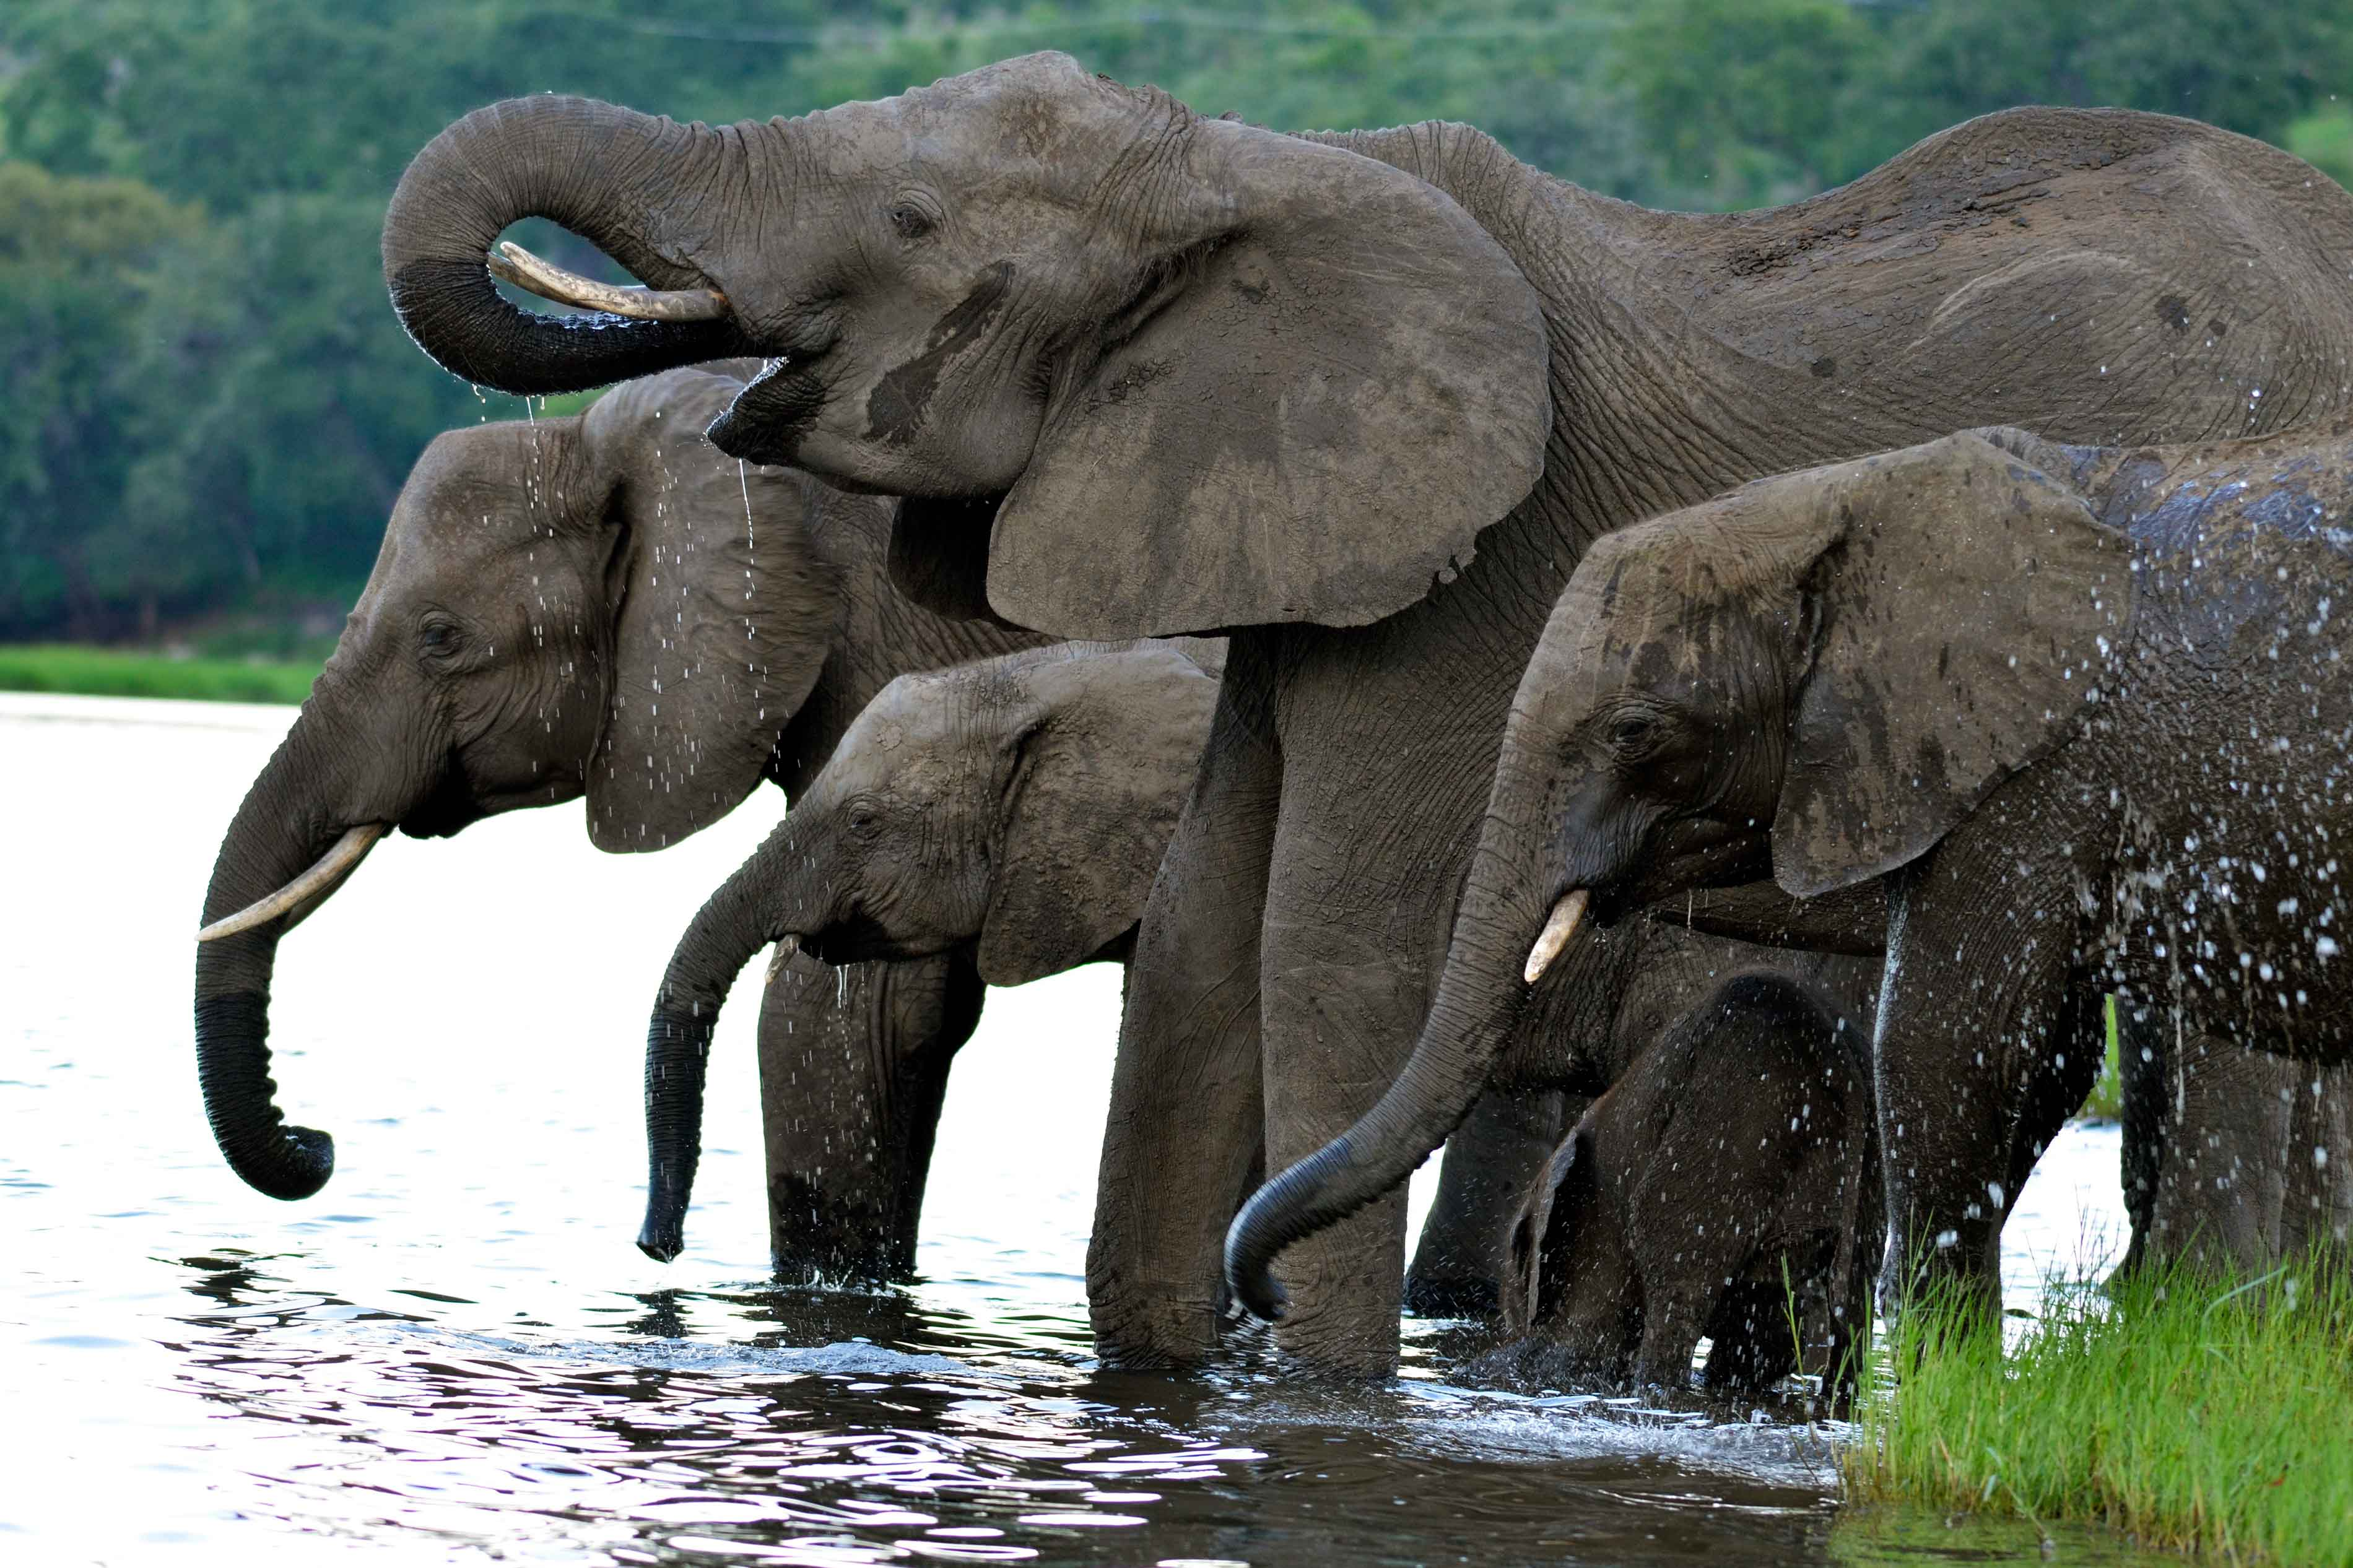 Elephants drinking and splashing water.